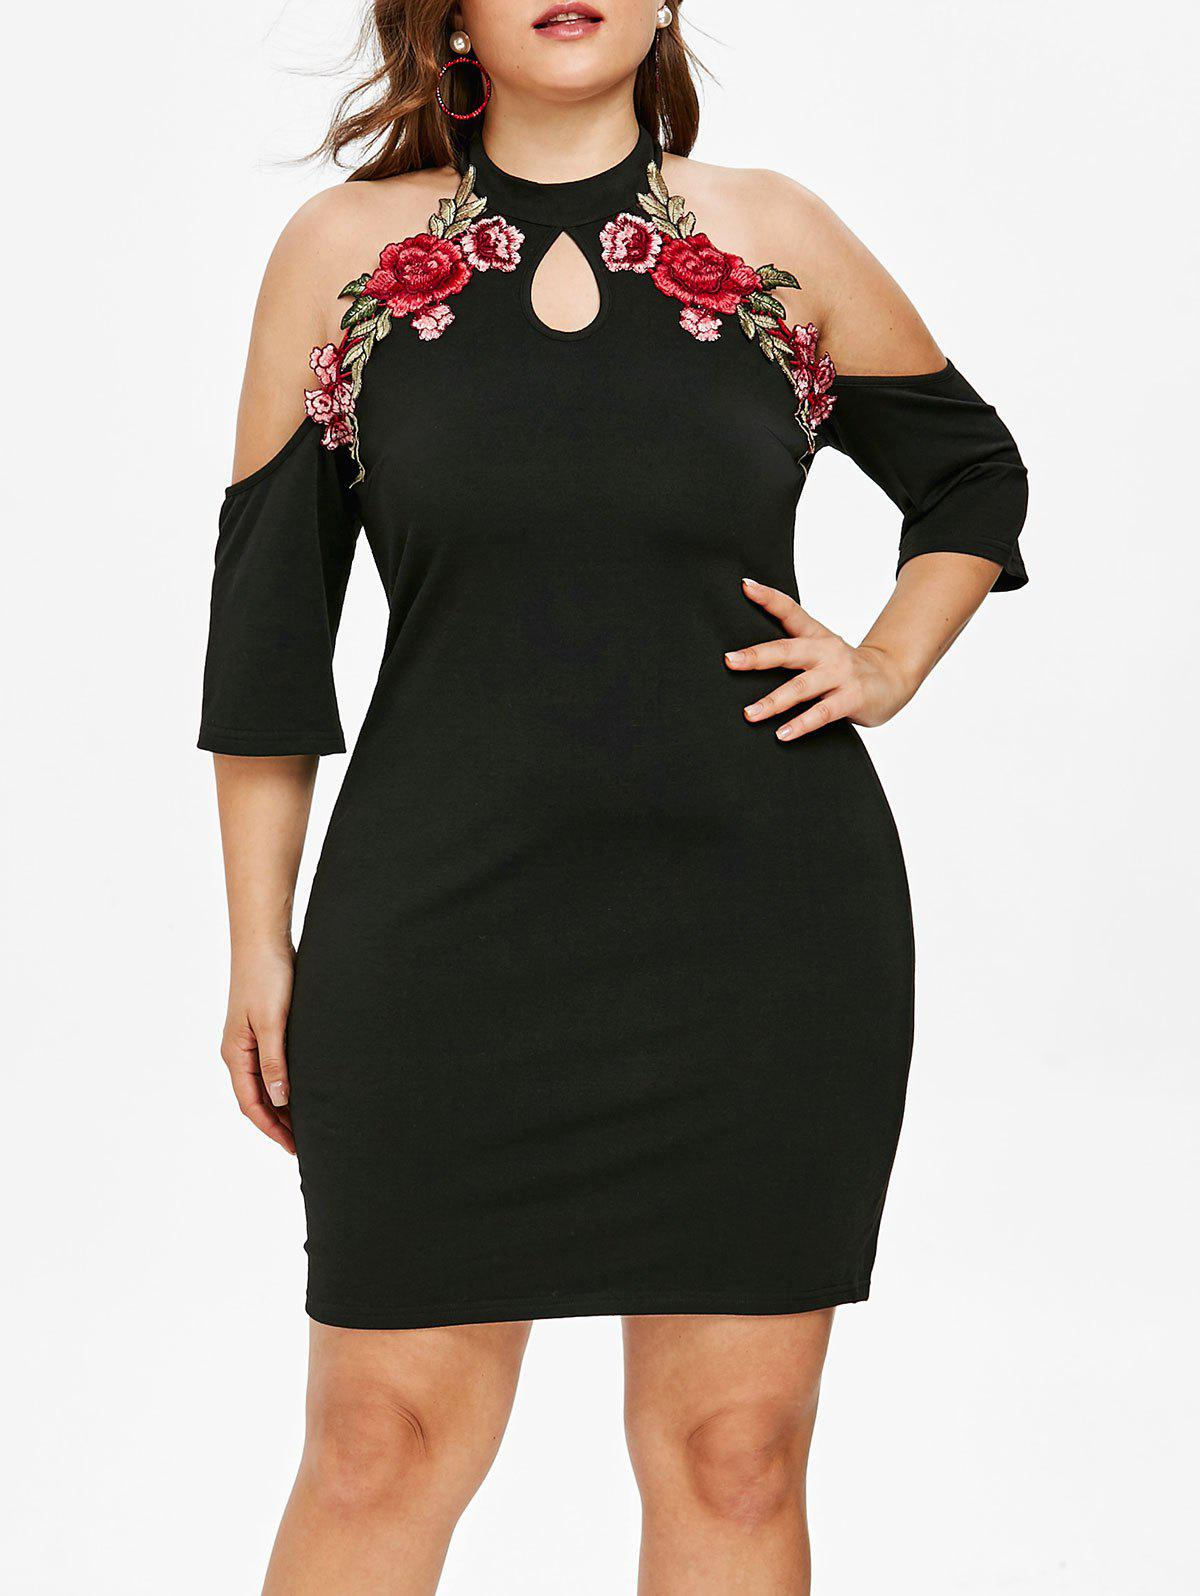 c61d0d0dead 2019 Plus Size Floral Applique Cold Shoulder Dress